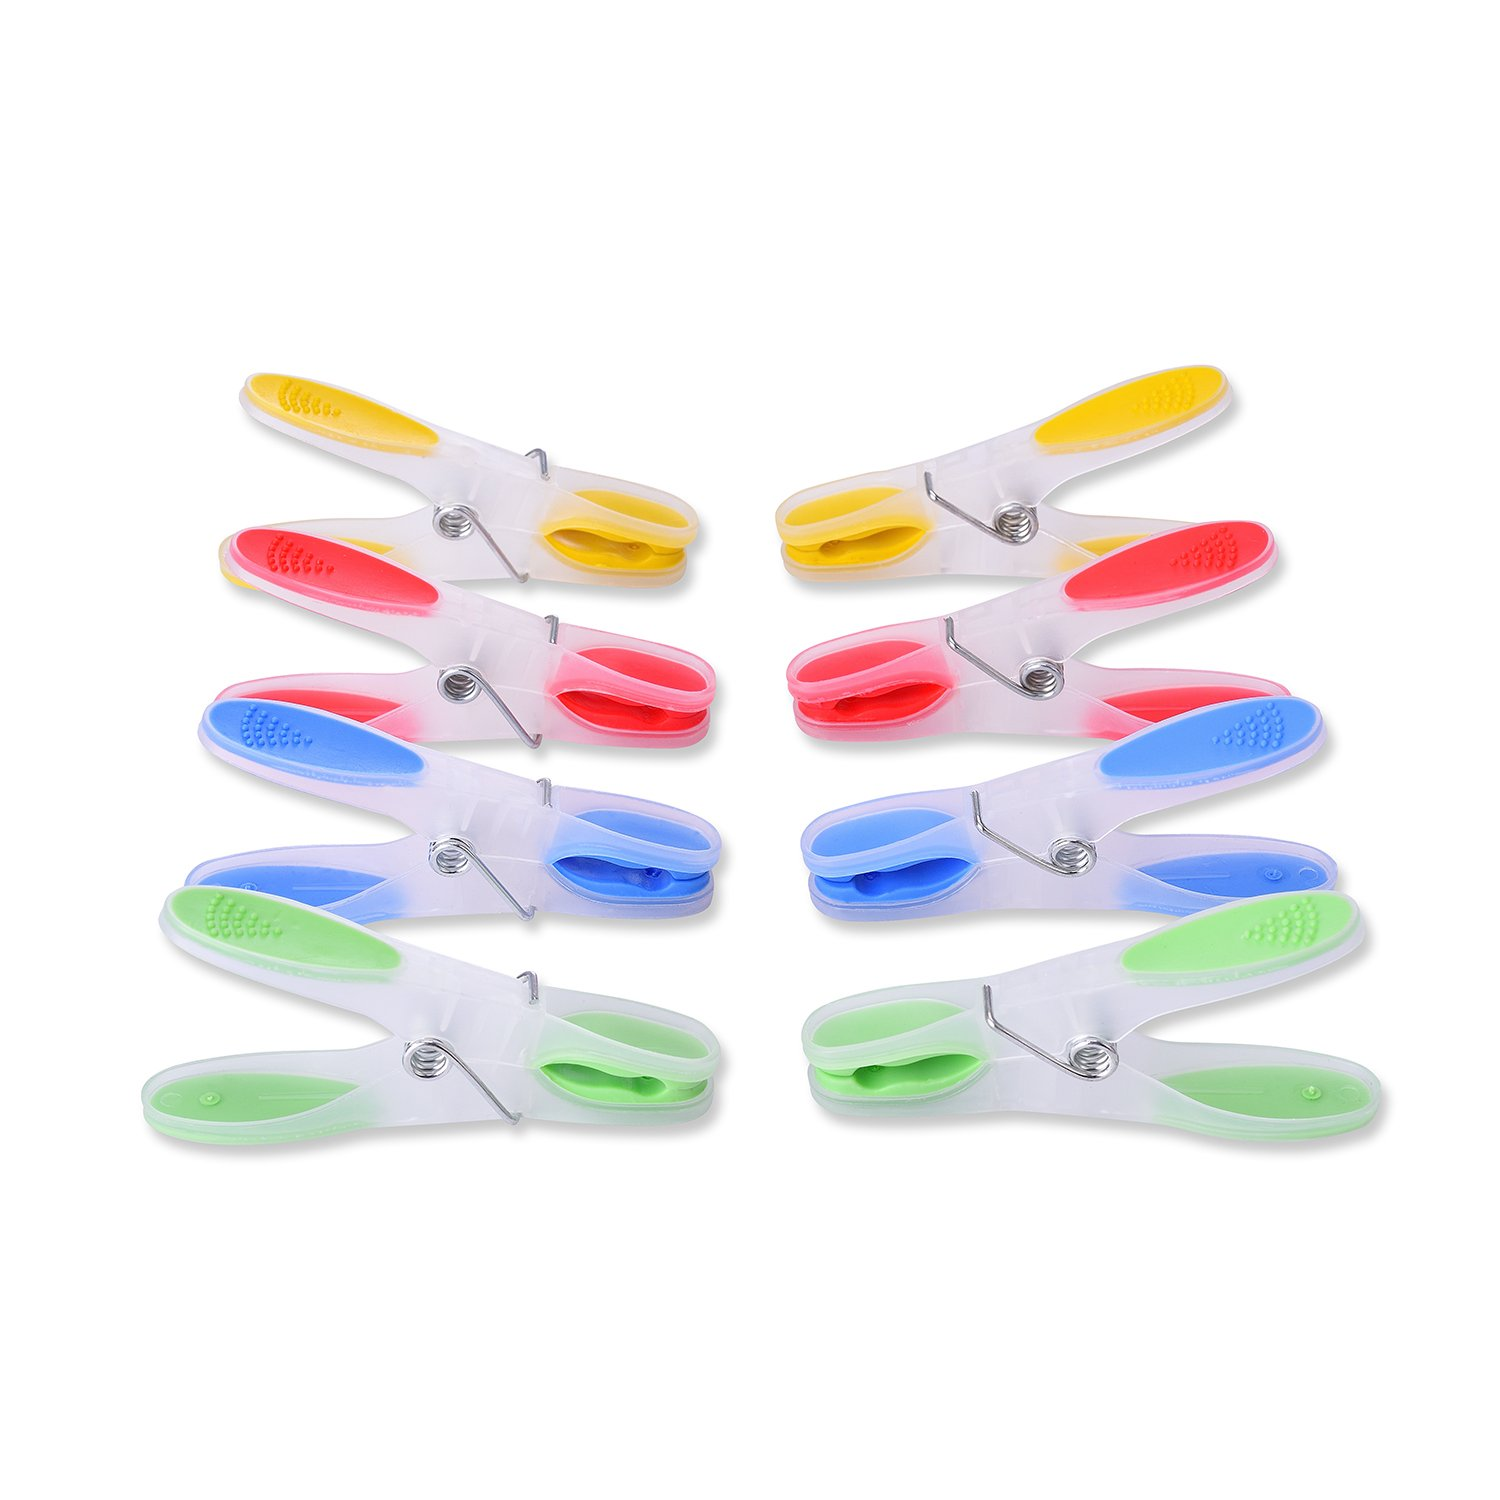 TtoyouU Decorative Clear Plastic Clothespins Colored Clothes Pins Clips Pegs 24pcs Assorted Colored (Green/Blue/Yellow/Red)